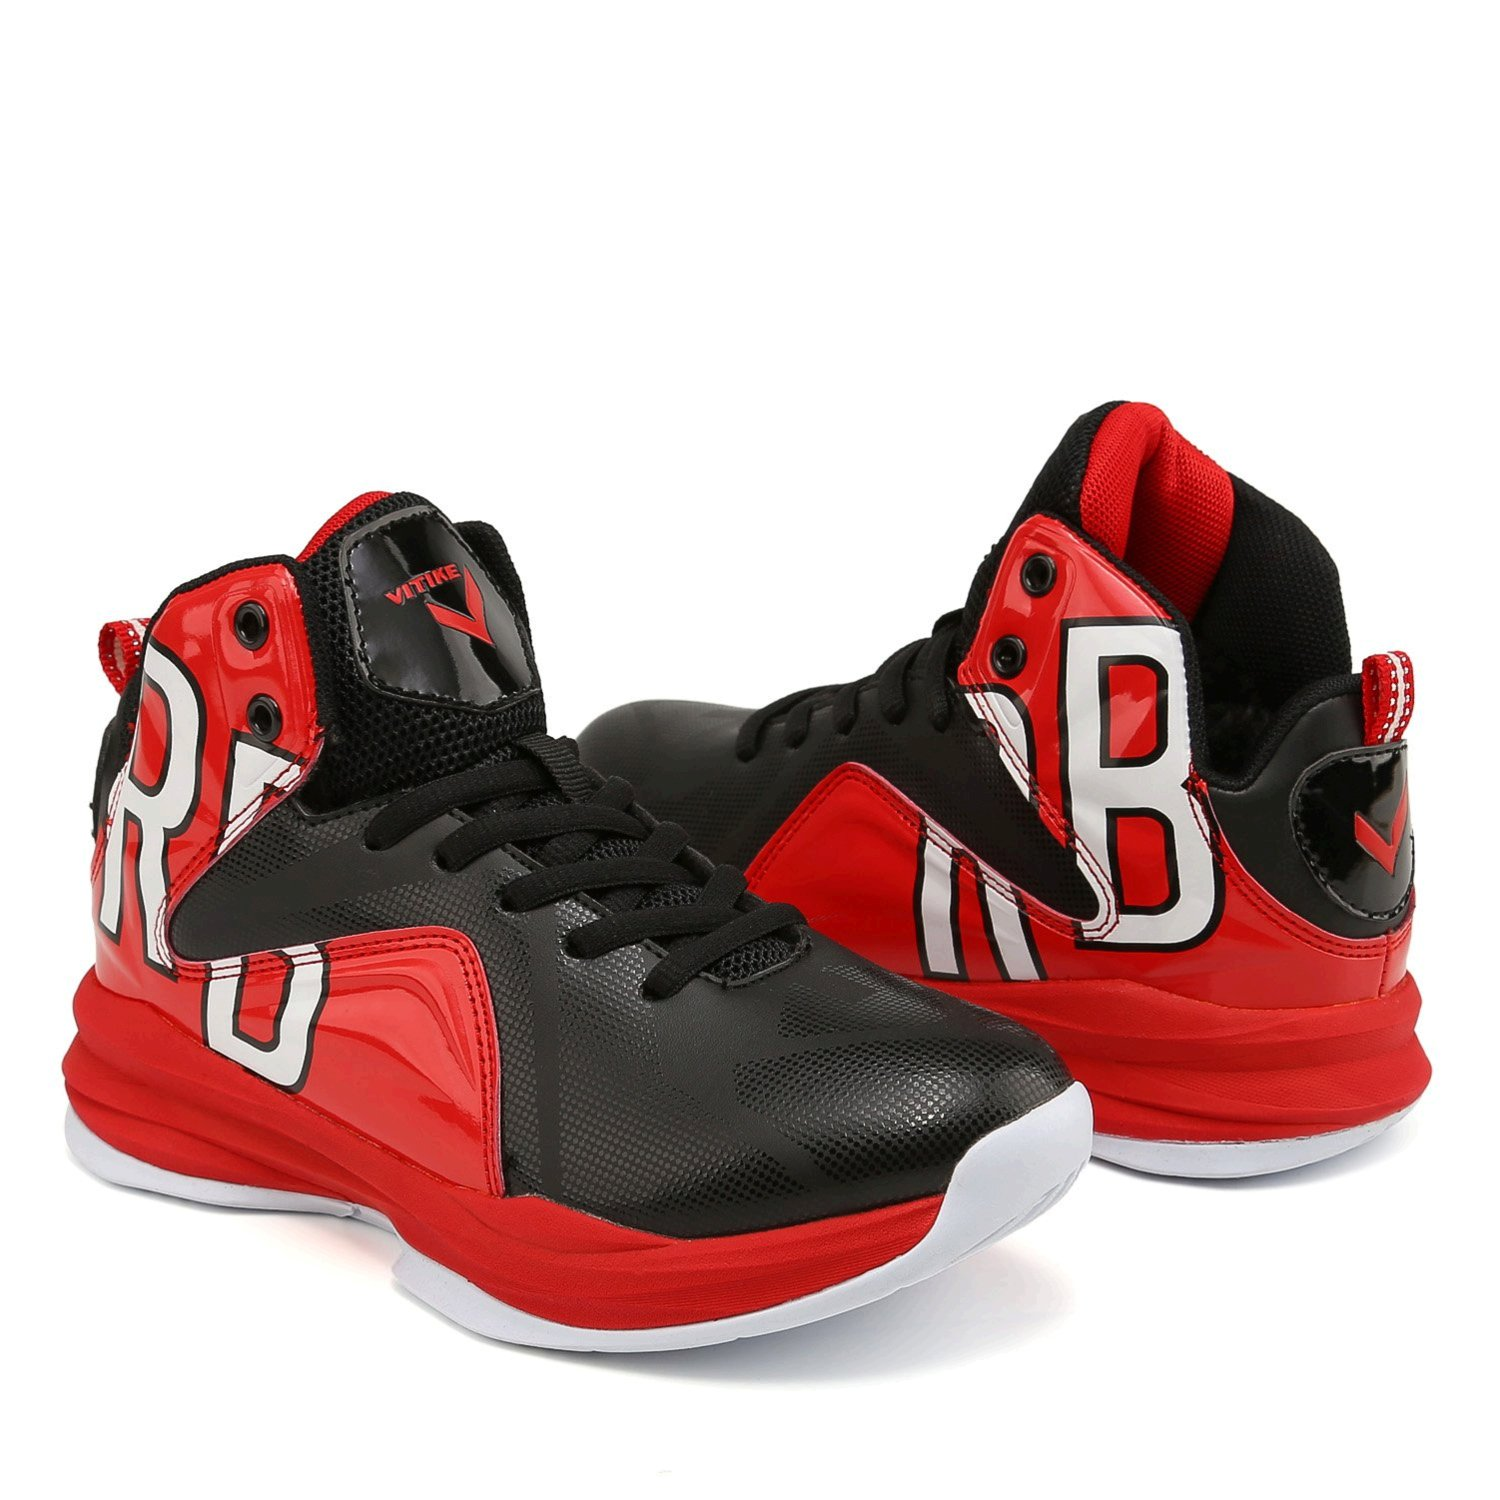 WETIKE Kid's Basketball Shoes High-Top Sneakers Outdoor ...